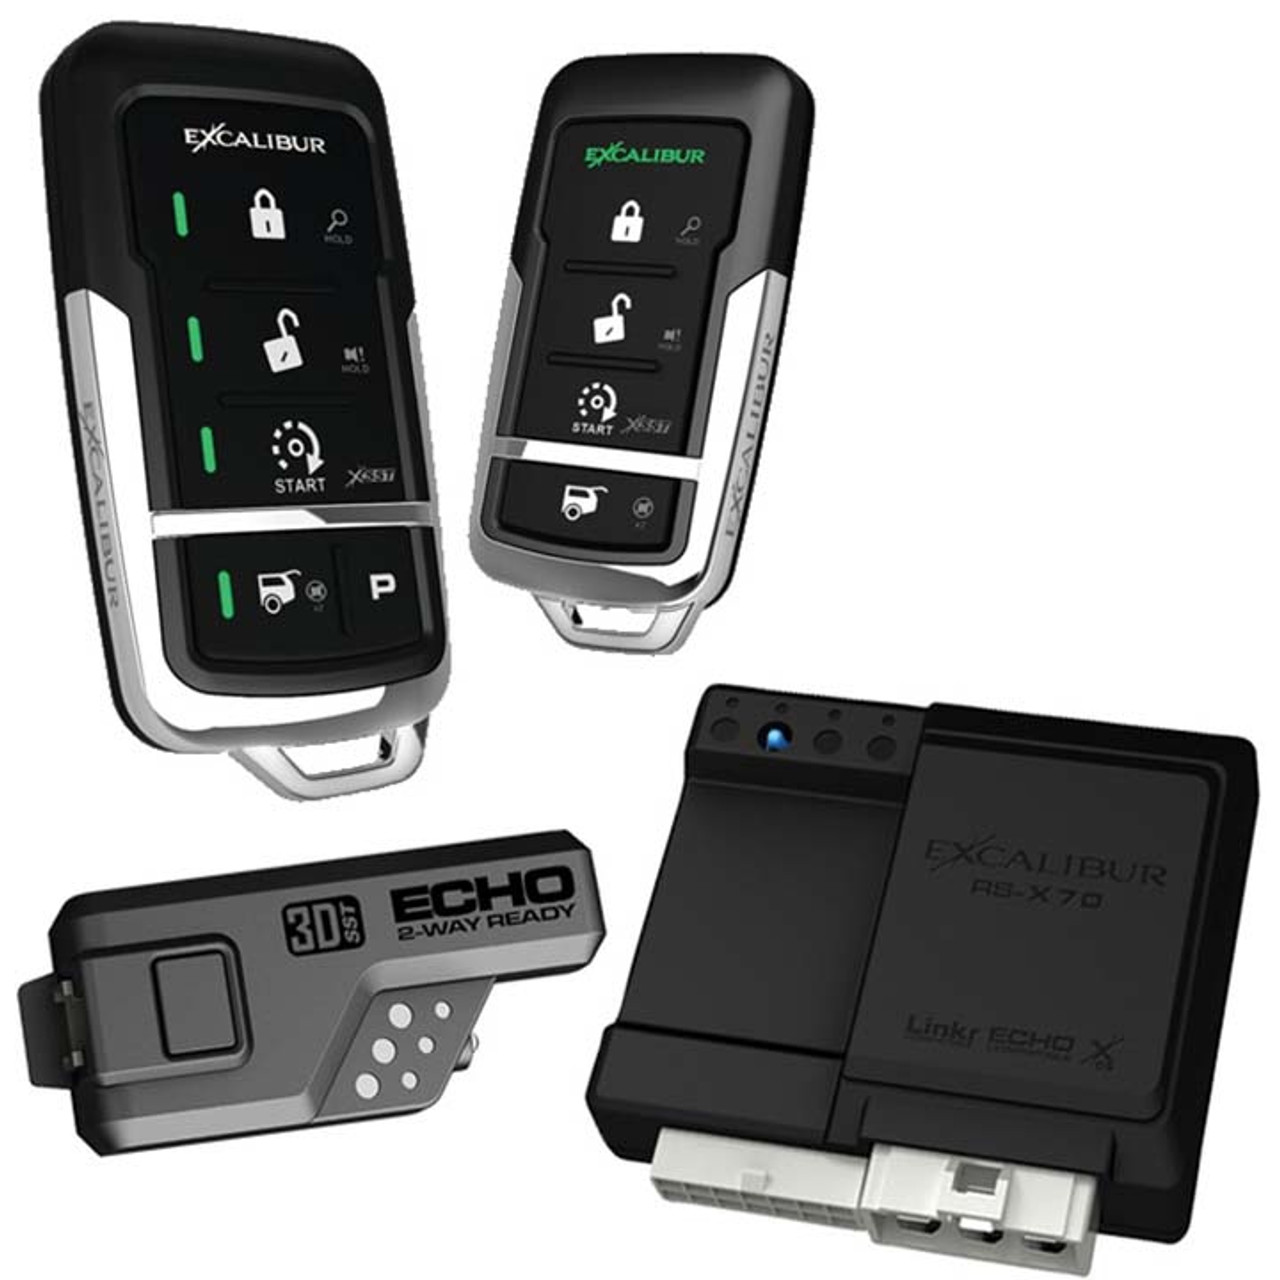 Excalibur 900Mhz Led 2-Way Keyless Entry & Remote Start (Linkr Ready)  (R-RS4753D)